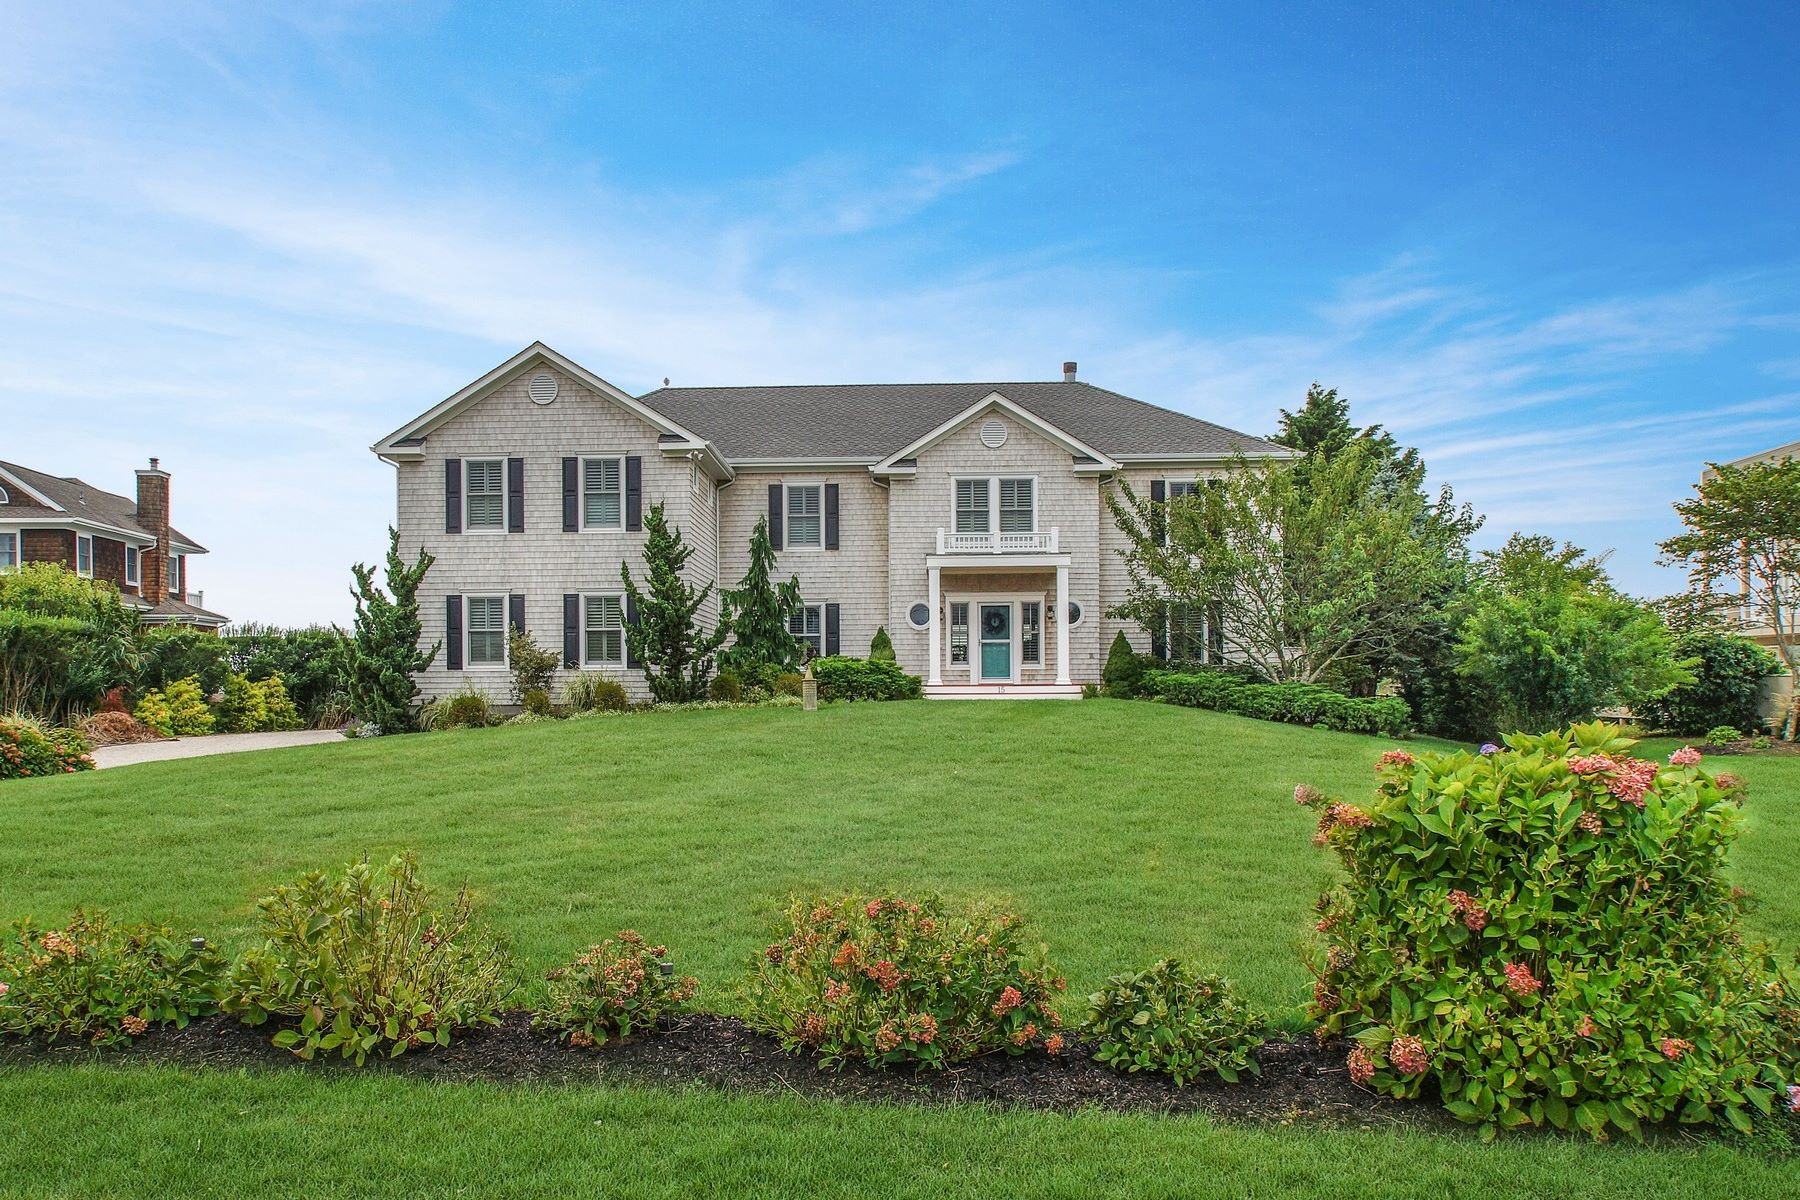 Single Family Homes for Sale at Westhampton 15 Sandpiper Ct Westhampton, New York 11977 United States